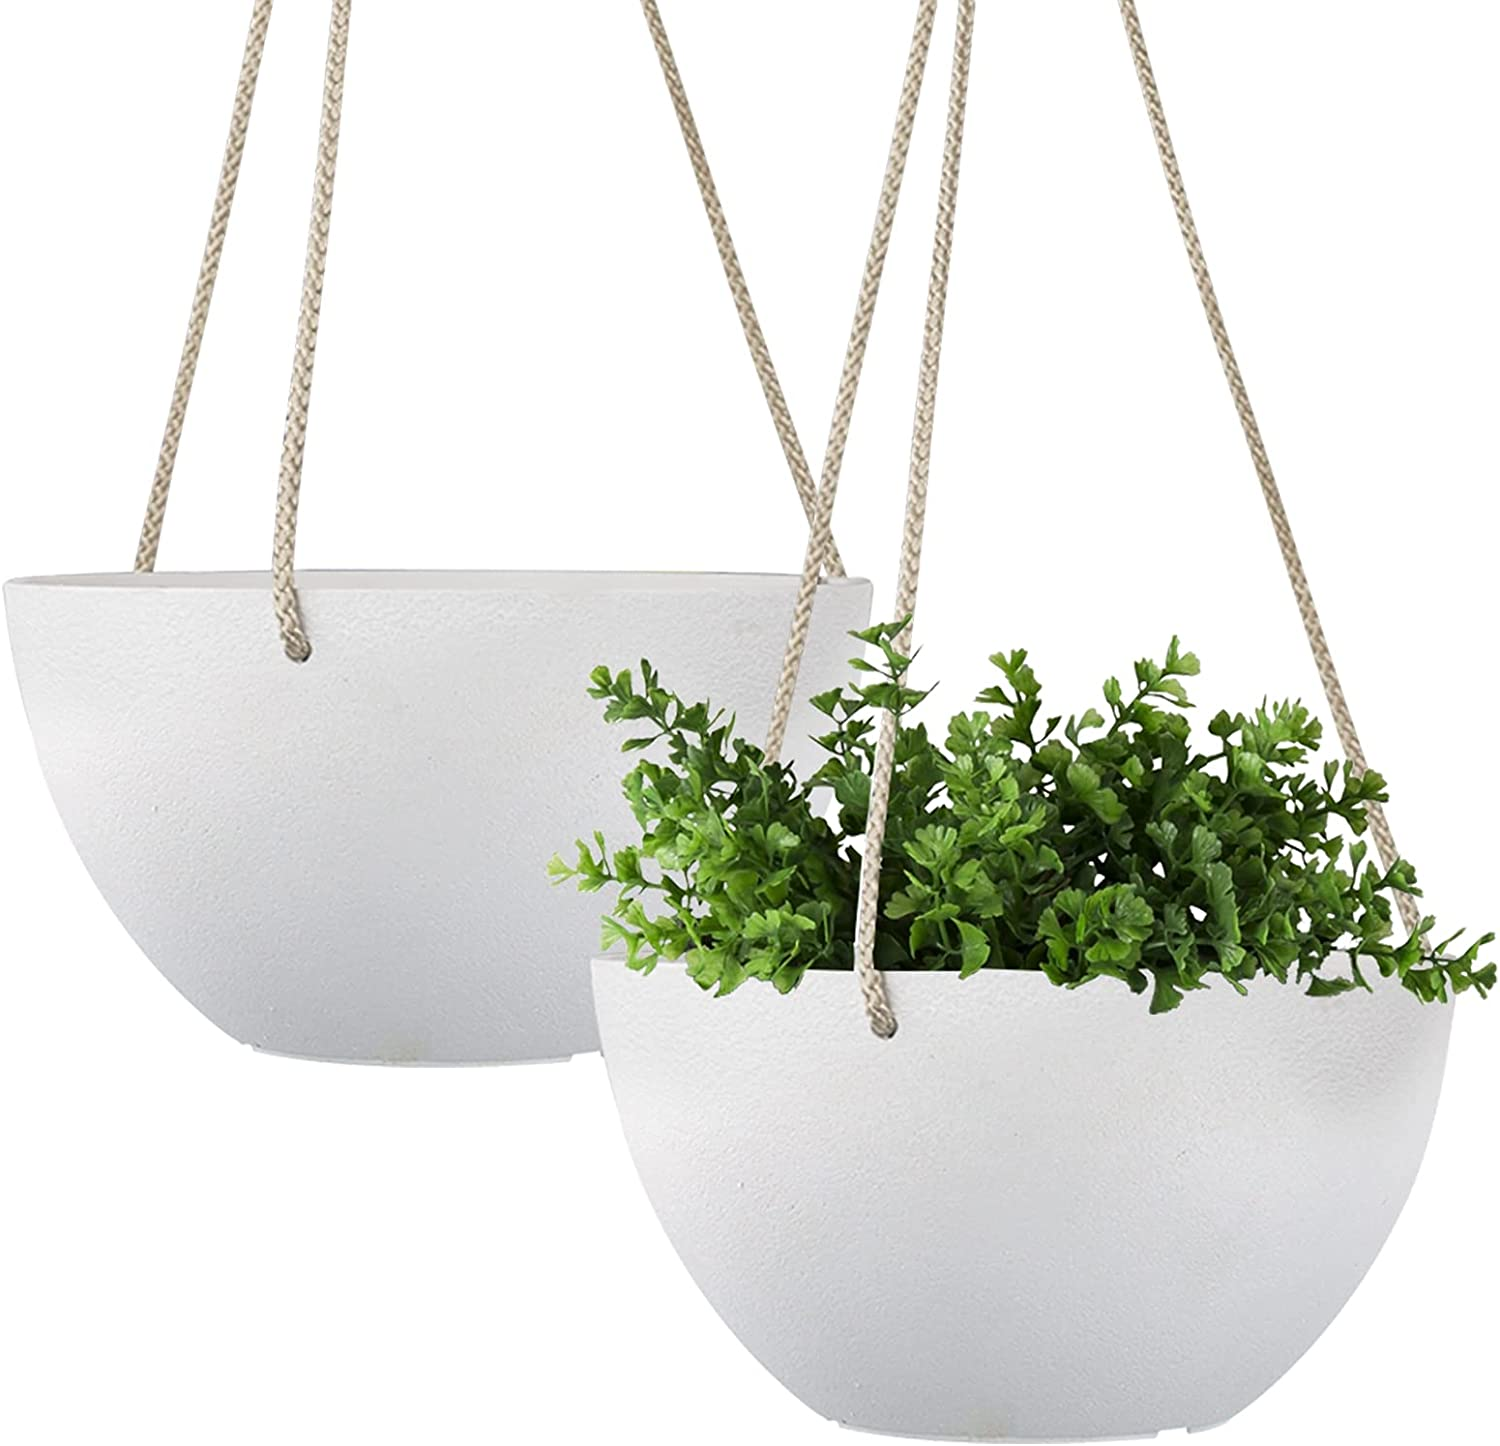 LA JOLIE MUSE White Hanging Planter Inch Outdo Challenge the lowest price of Japan 8 Indoor depot - Basket